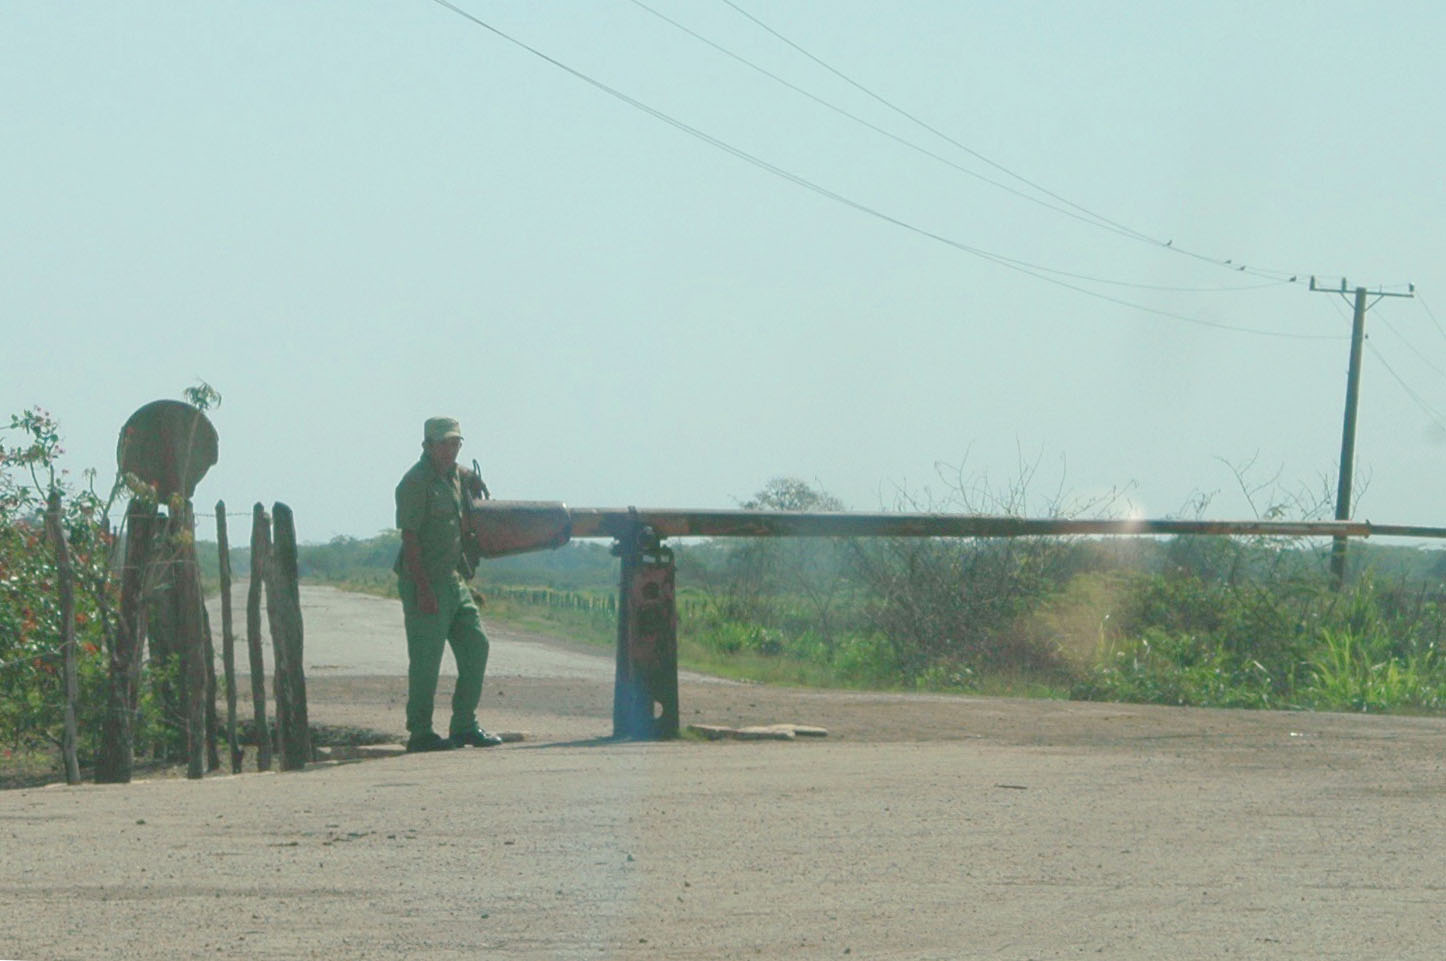 Government official guarding the area